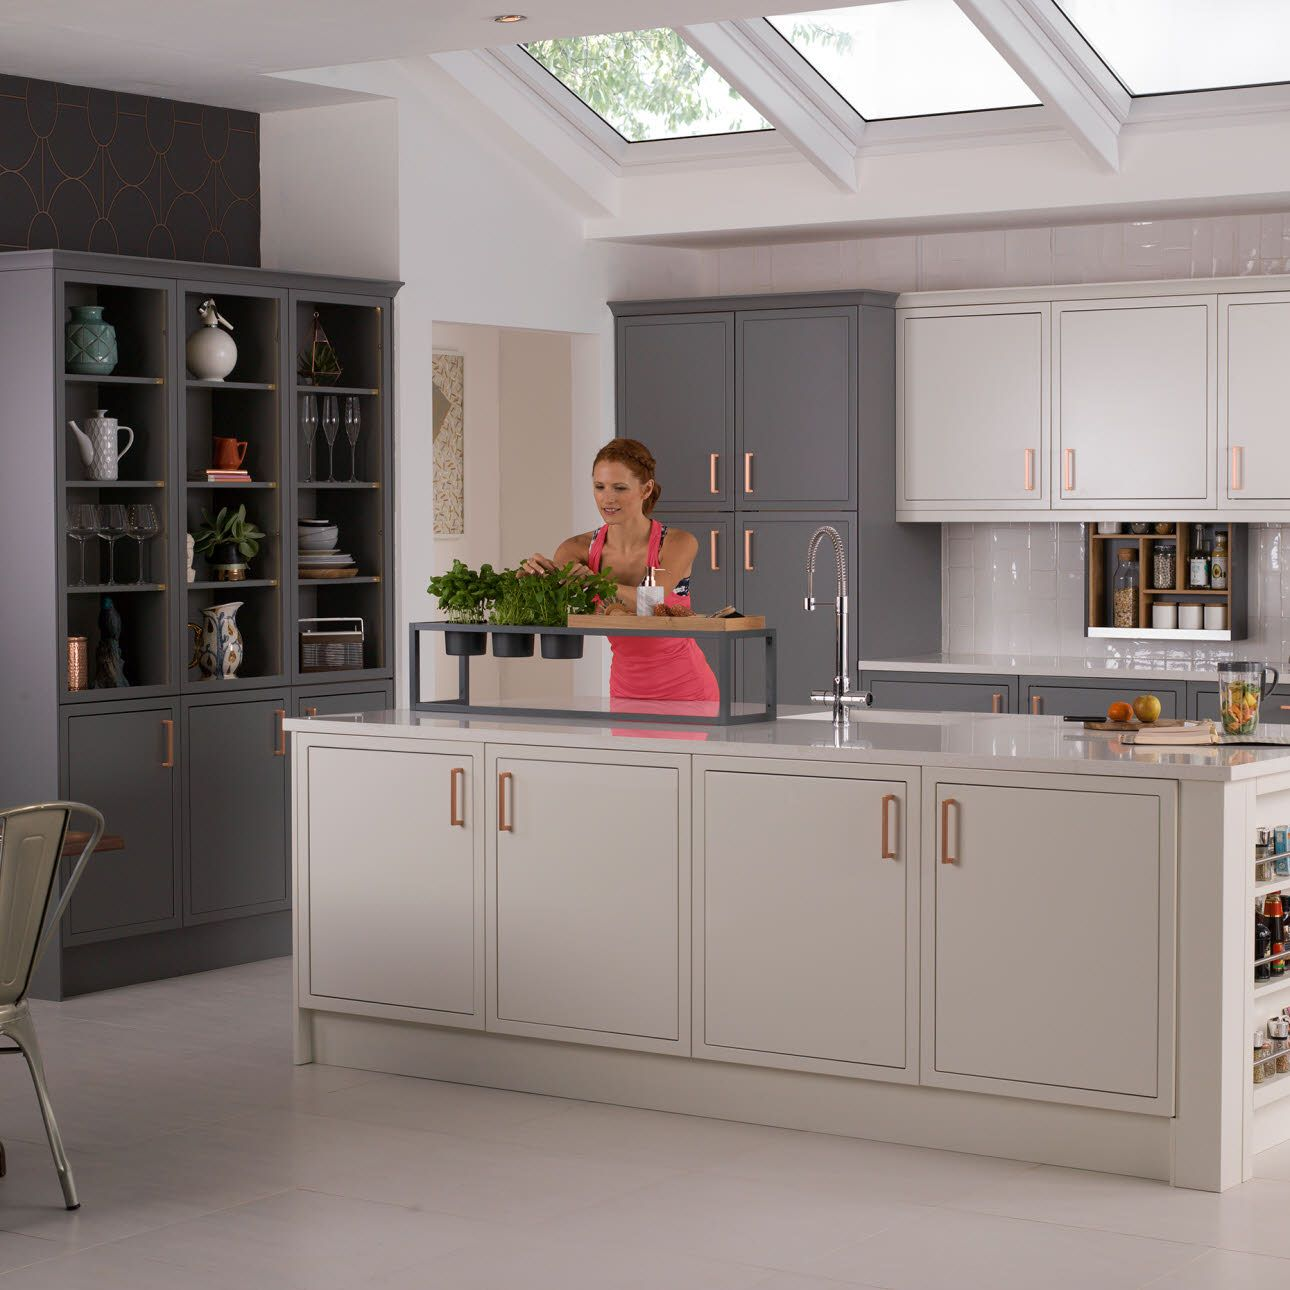 Image Result For Magnet Newbury Kitchen Kitchen Kitchen Models Kitchen Design